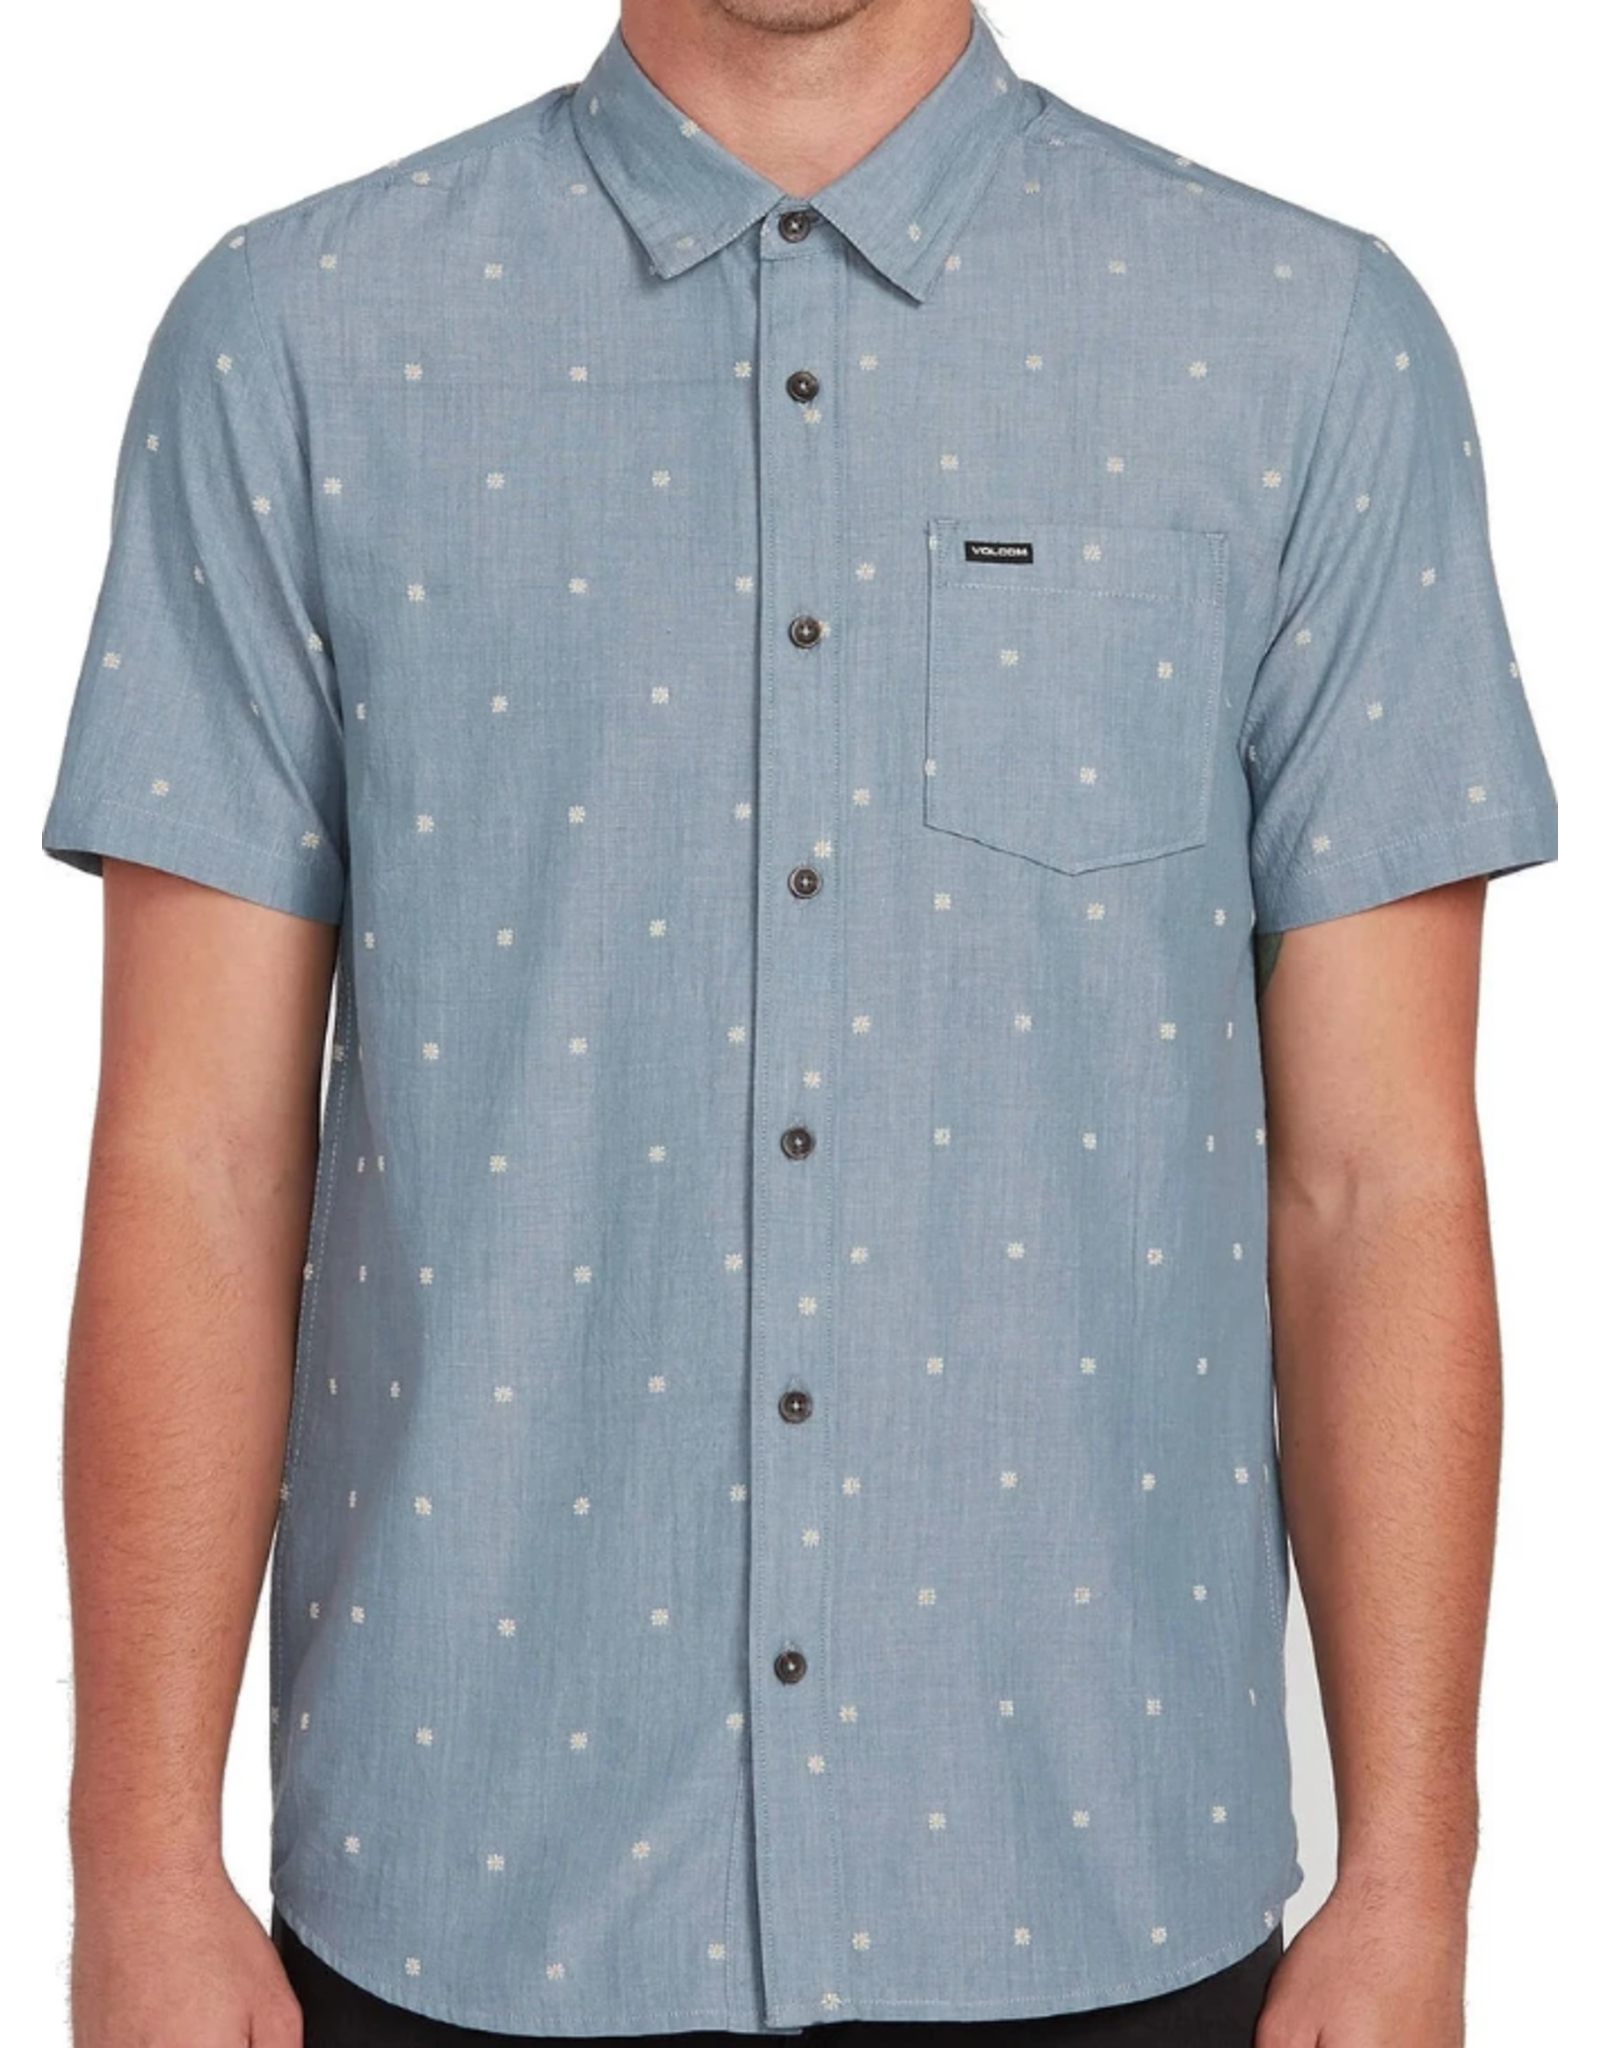 Volcom Archive Mark Shirt - Stormy Blue